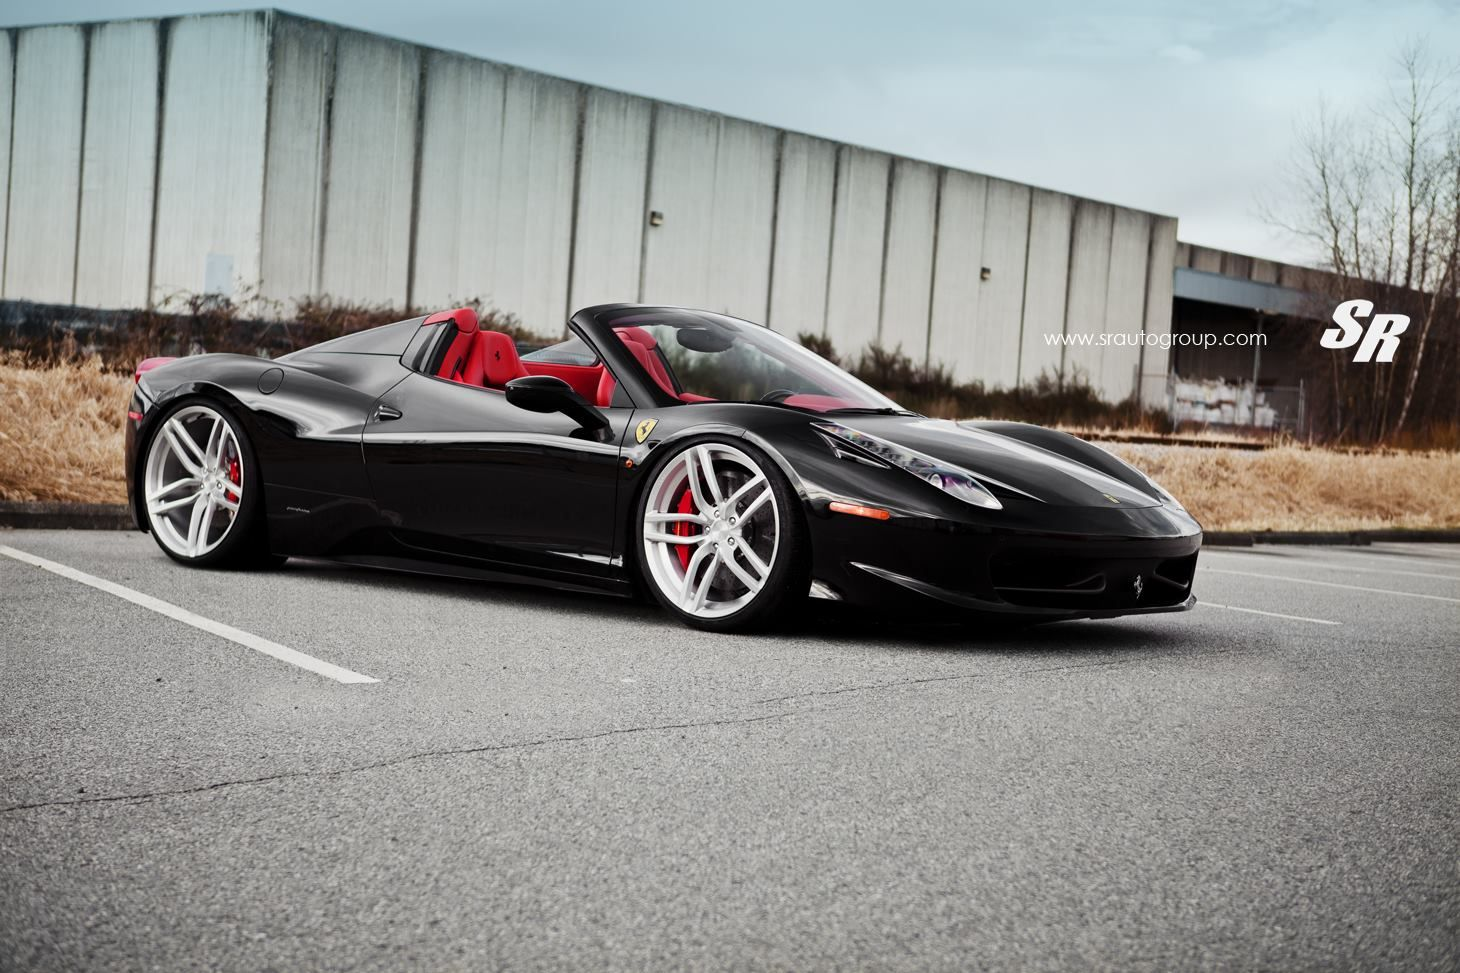 Merveilleux Vehicle · Nero Daytona Ferrari 458 Spider ...